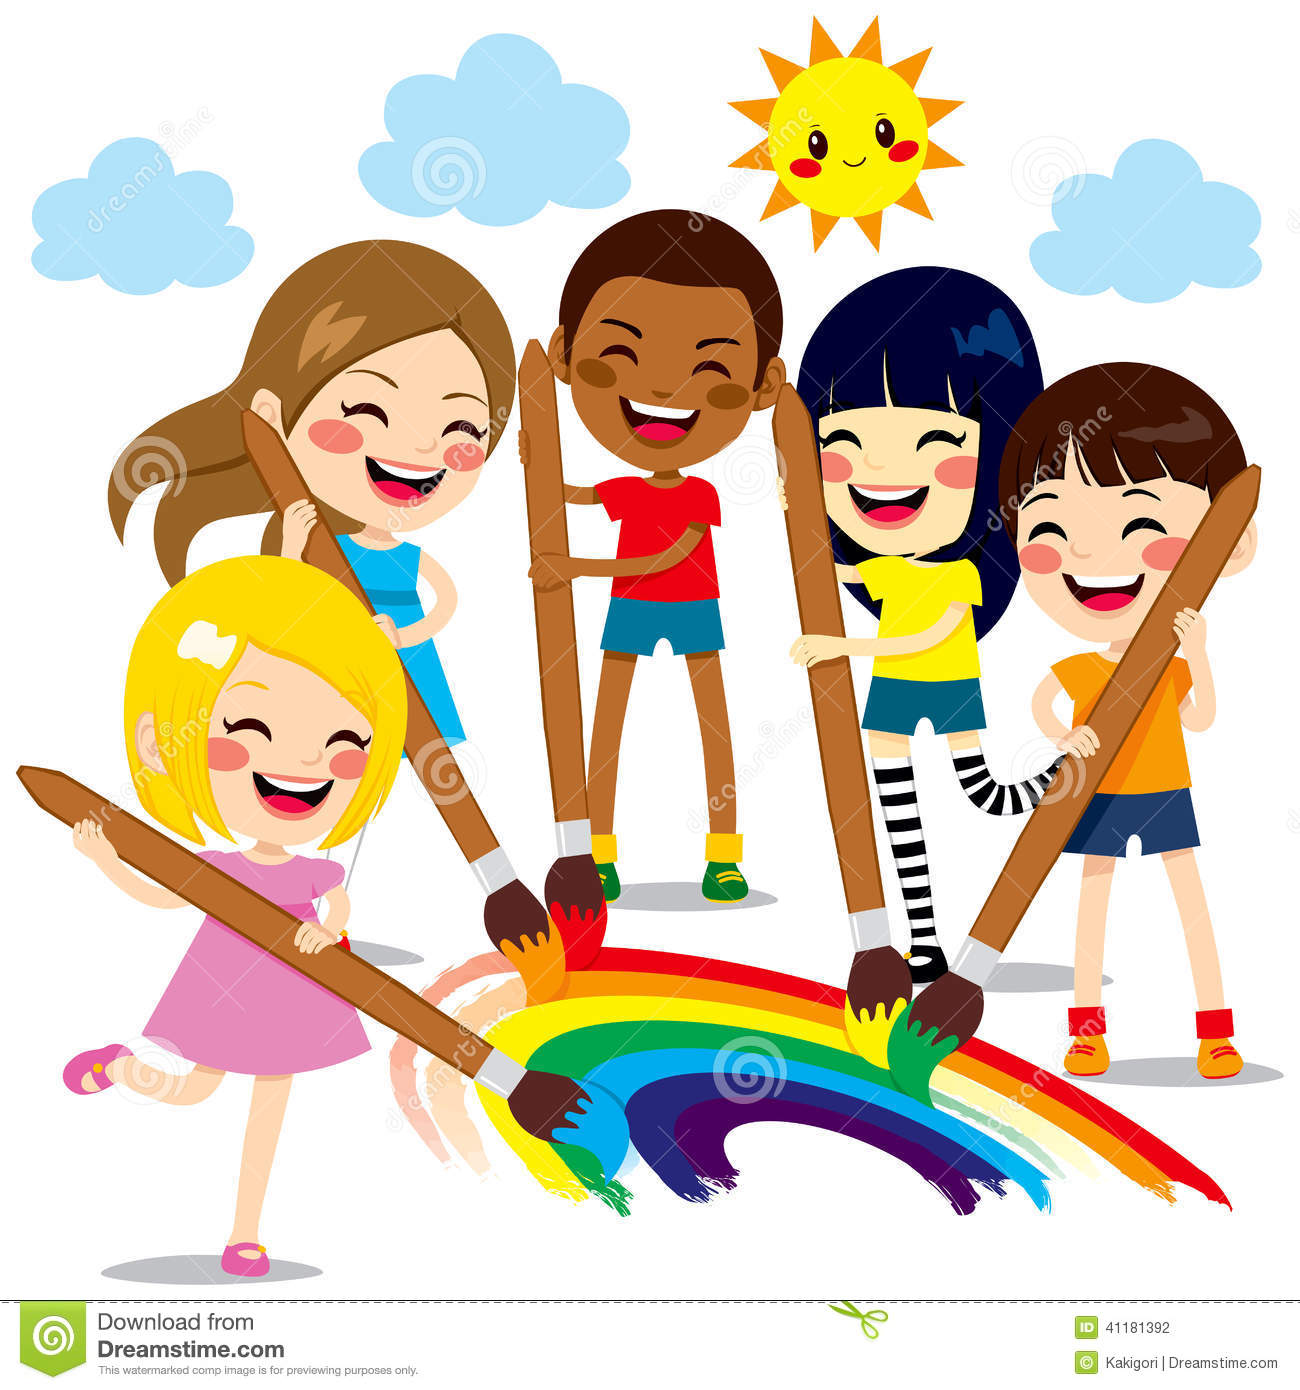 kids painting rainbow - Paint Pictures For Kids